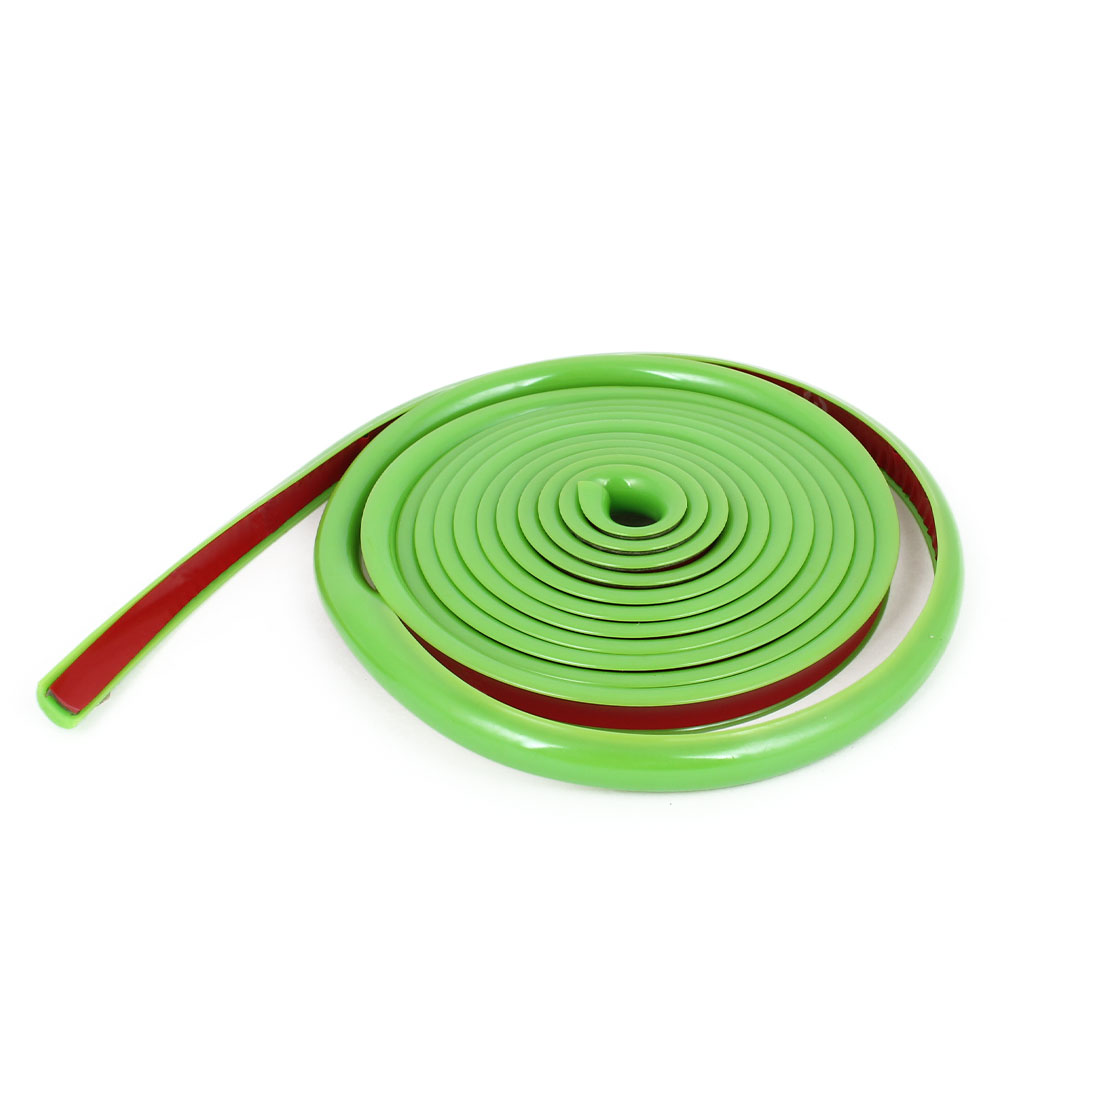 Green Soft Plastic 8mm Width 2m Long Flexible Car Trim Strip